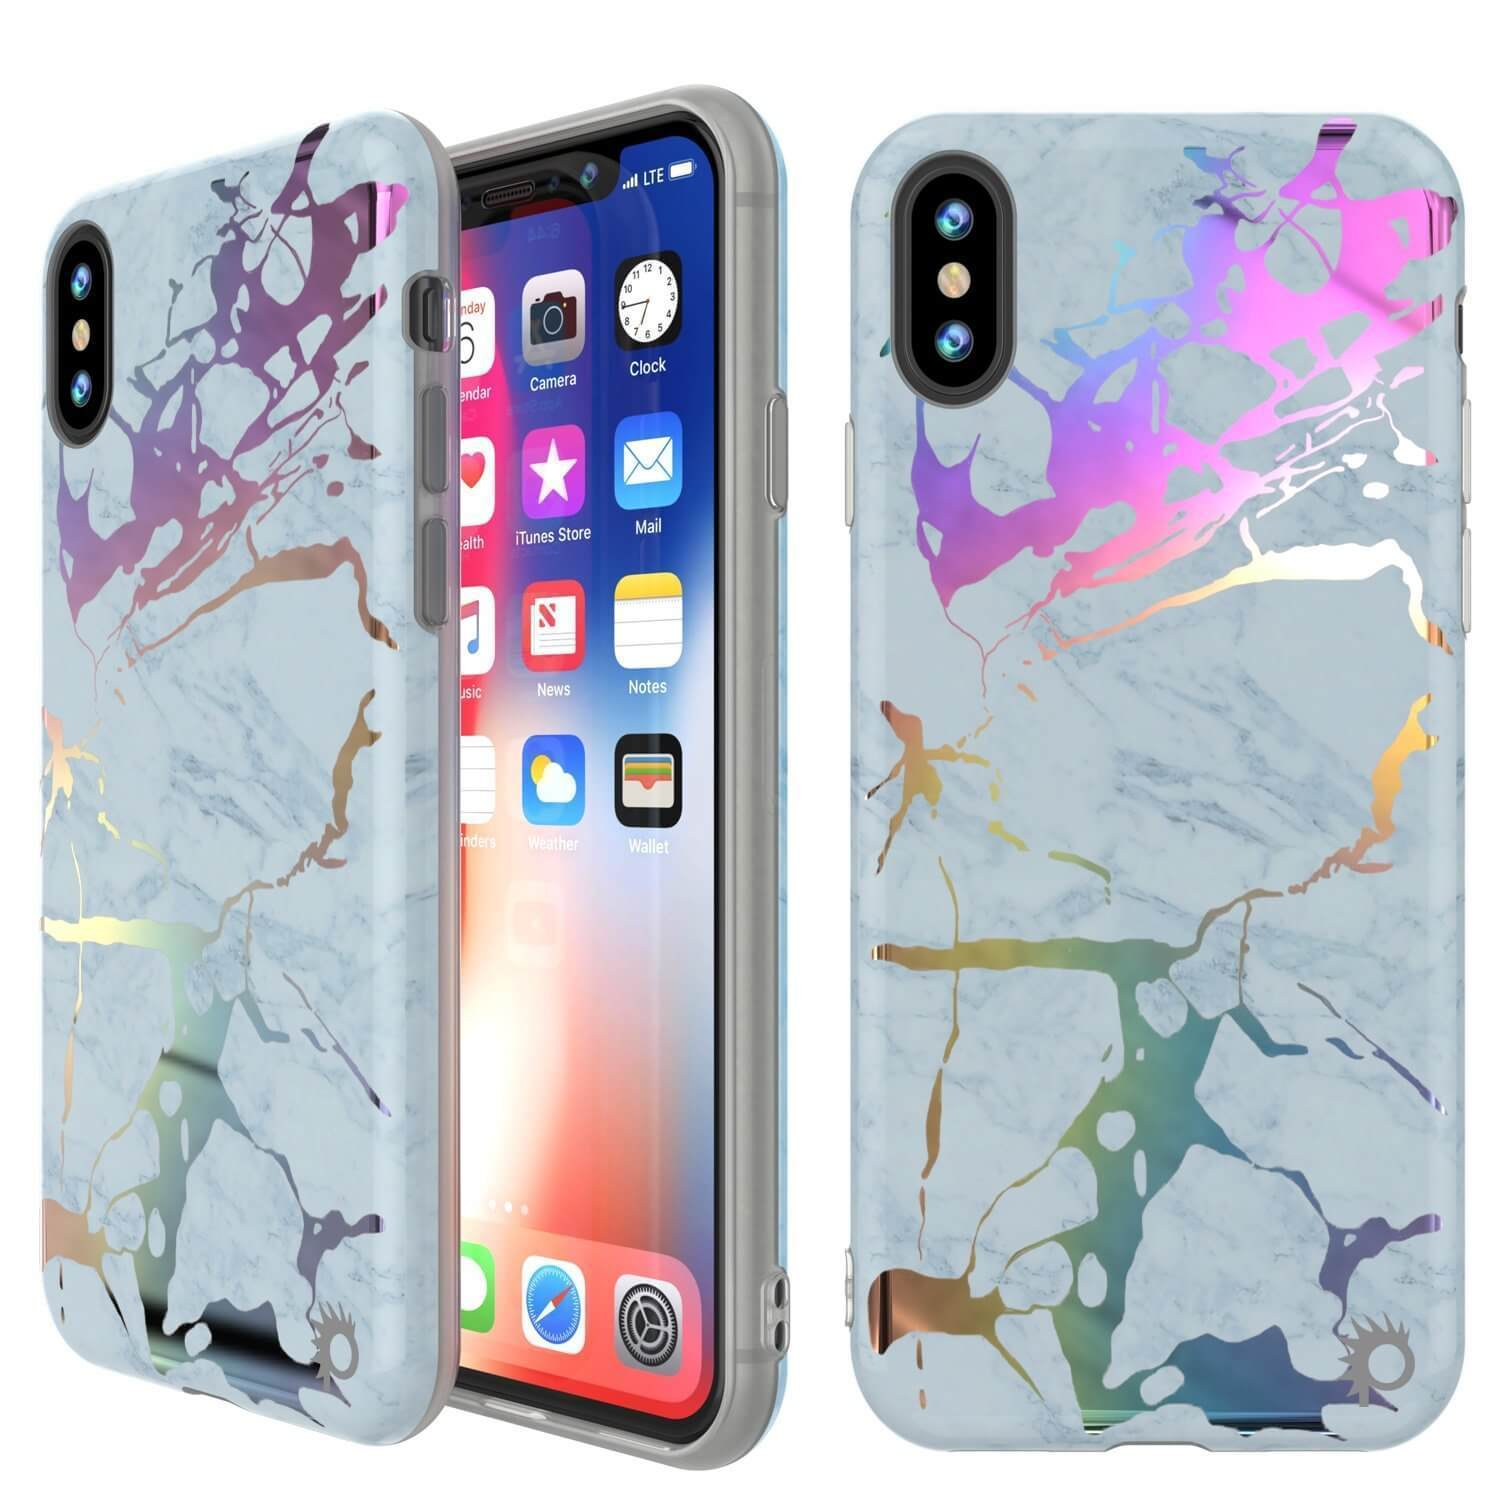 Punkcase iPhone XS Max Marble Case, Protective Full Body Cover W/9H Tempered Glass Screen Protector (Blue Marmo)